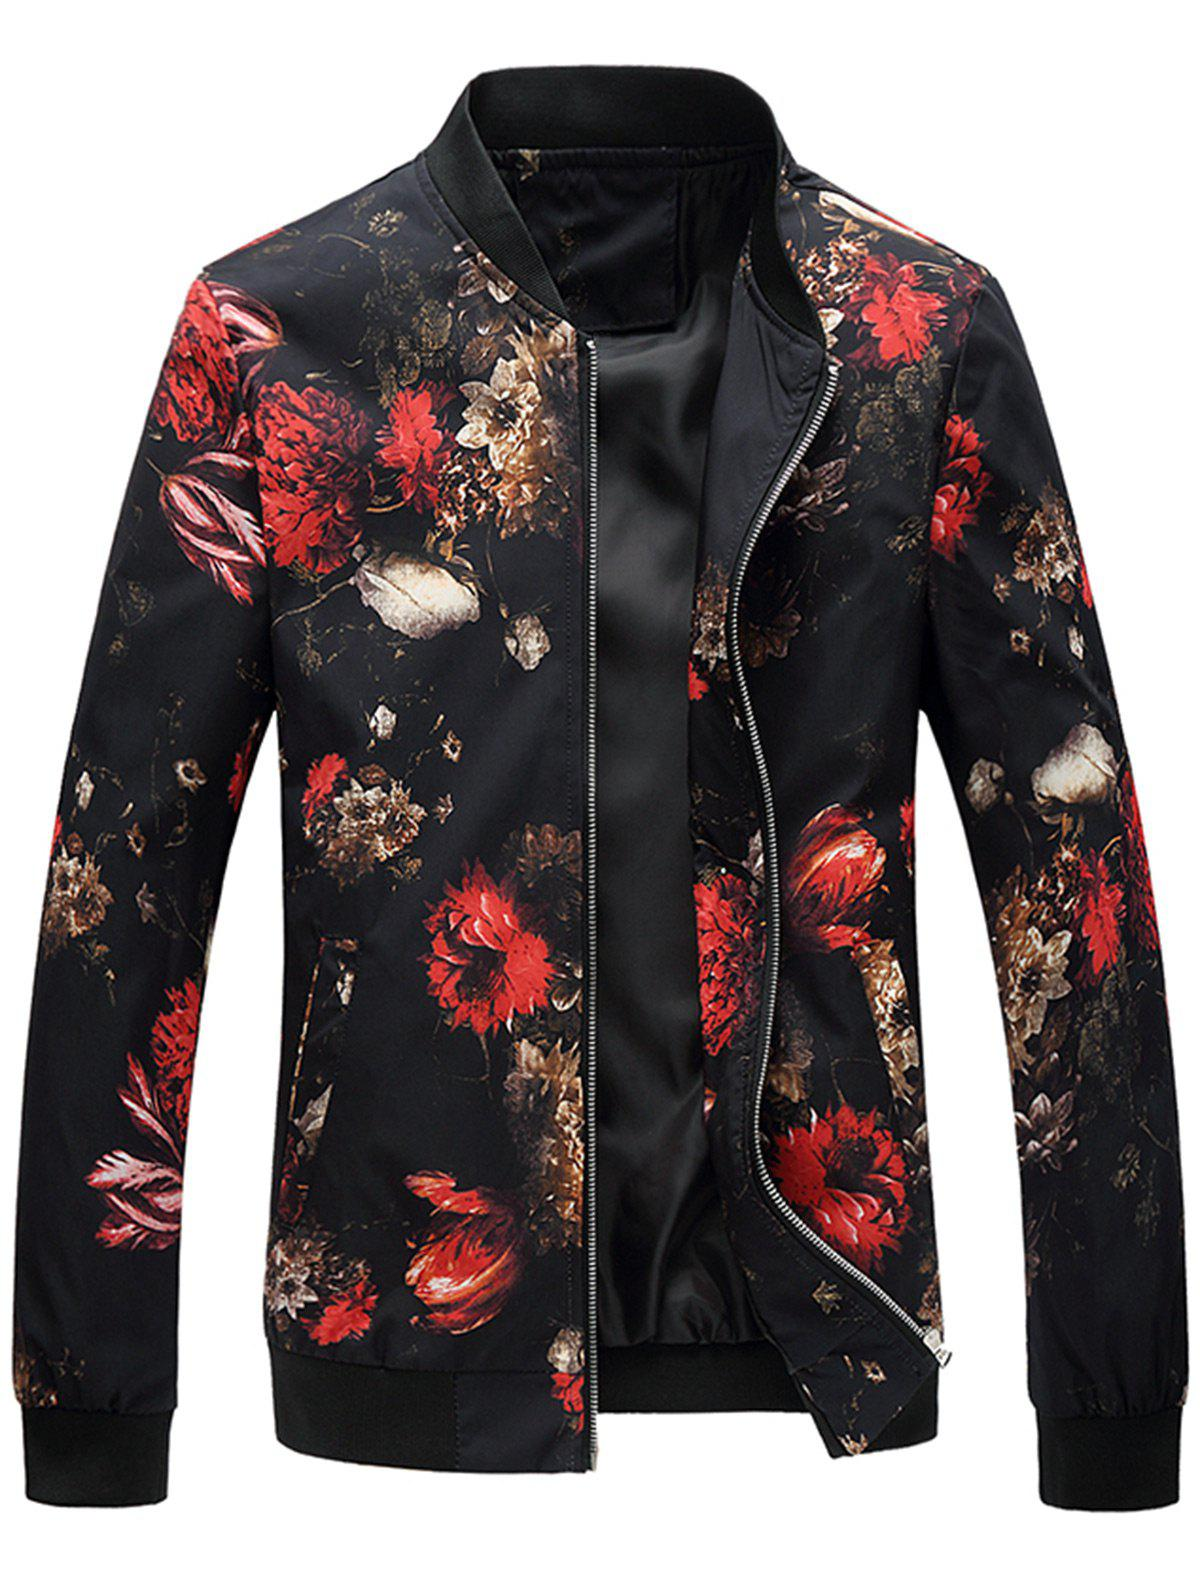 Floral Printed Zip Up Jacket, Black